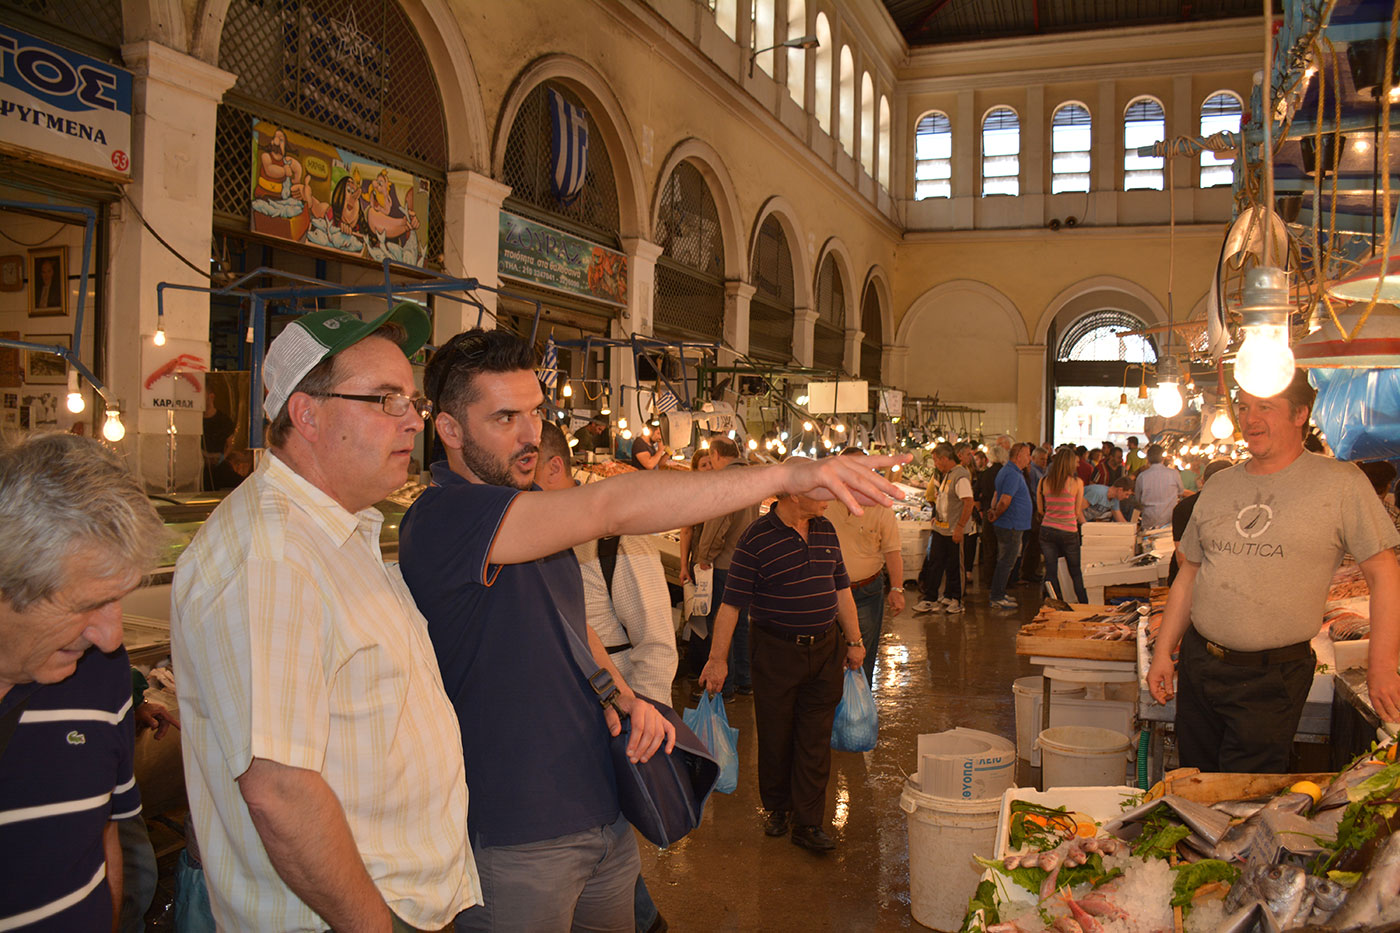 The Athens Central Market